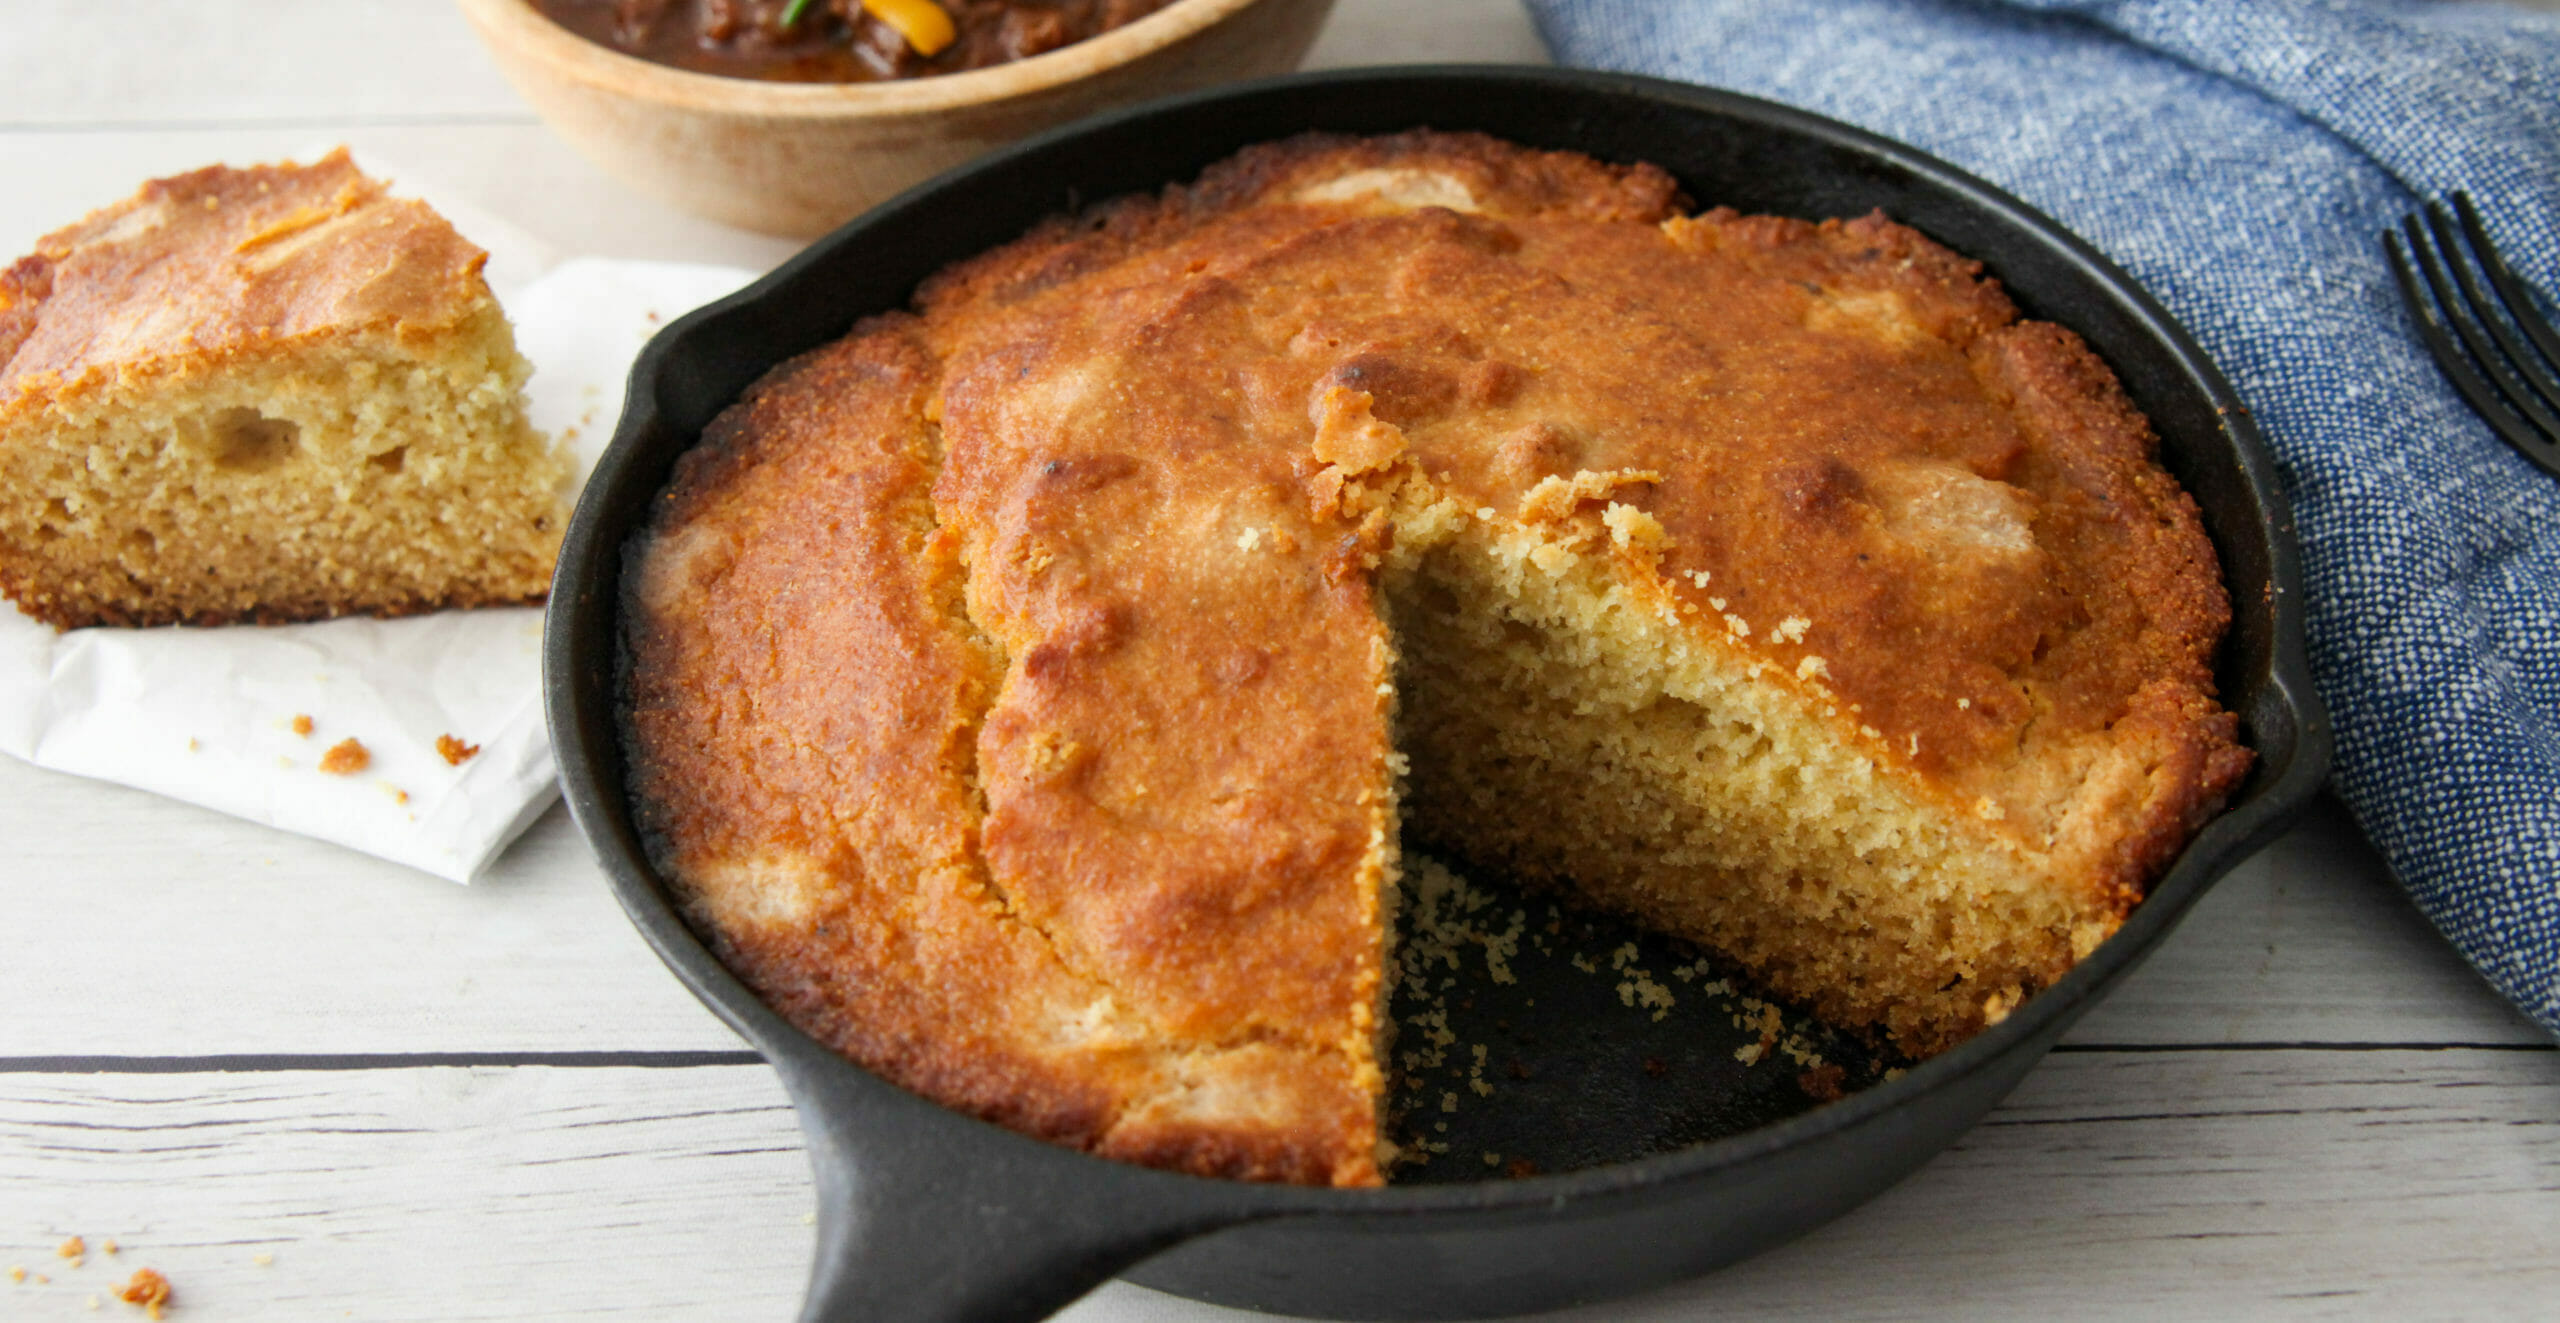 Cornbread Made With Cake Flour In Cast Iron Pan